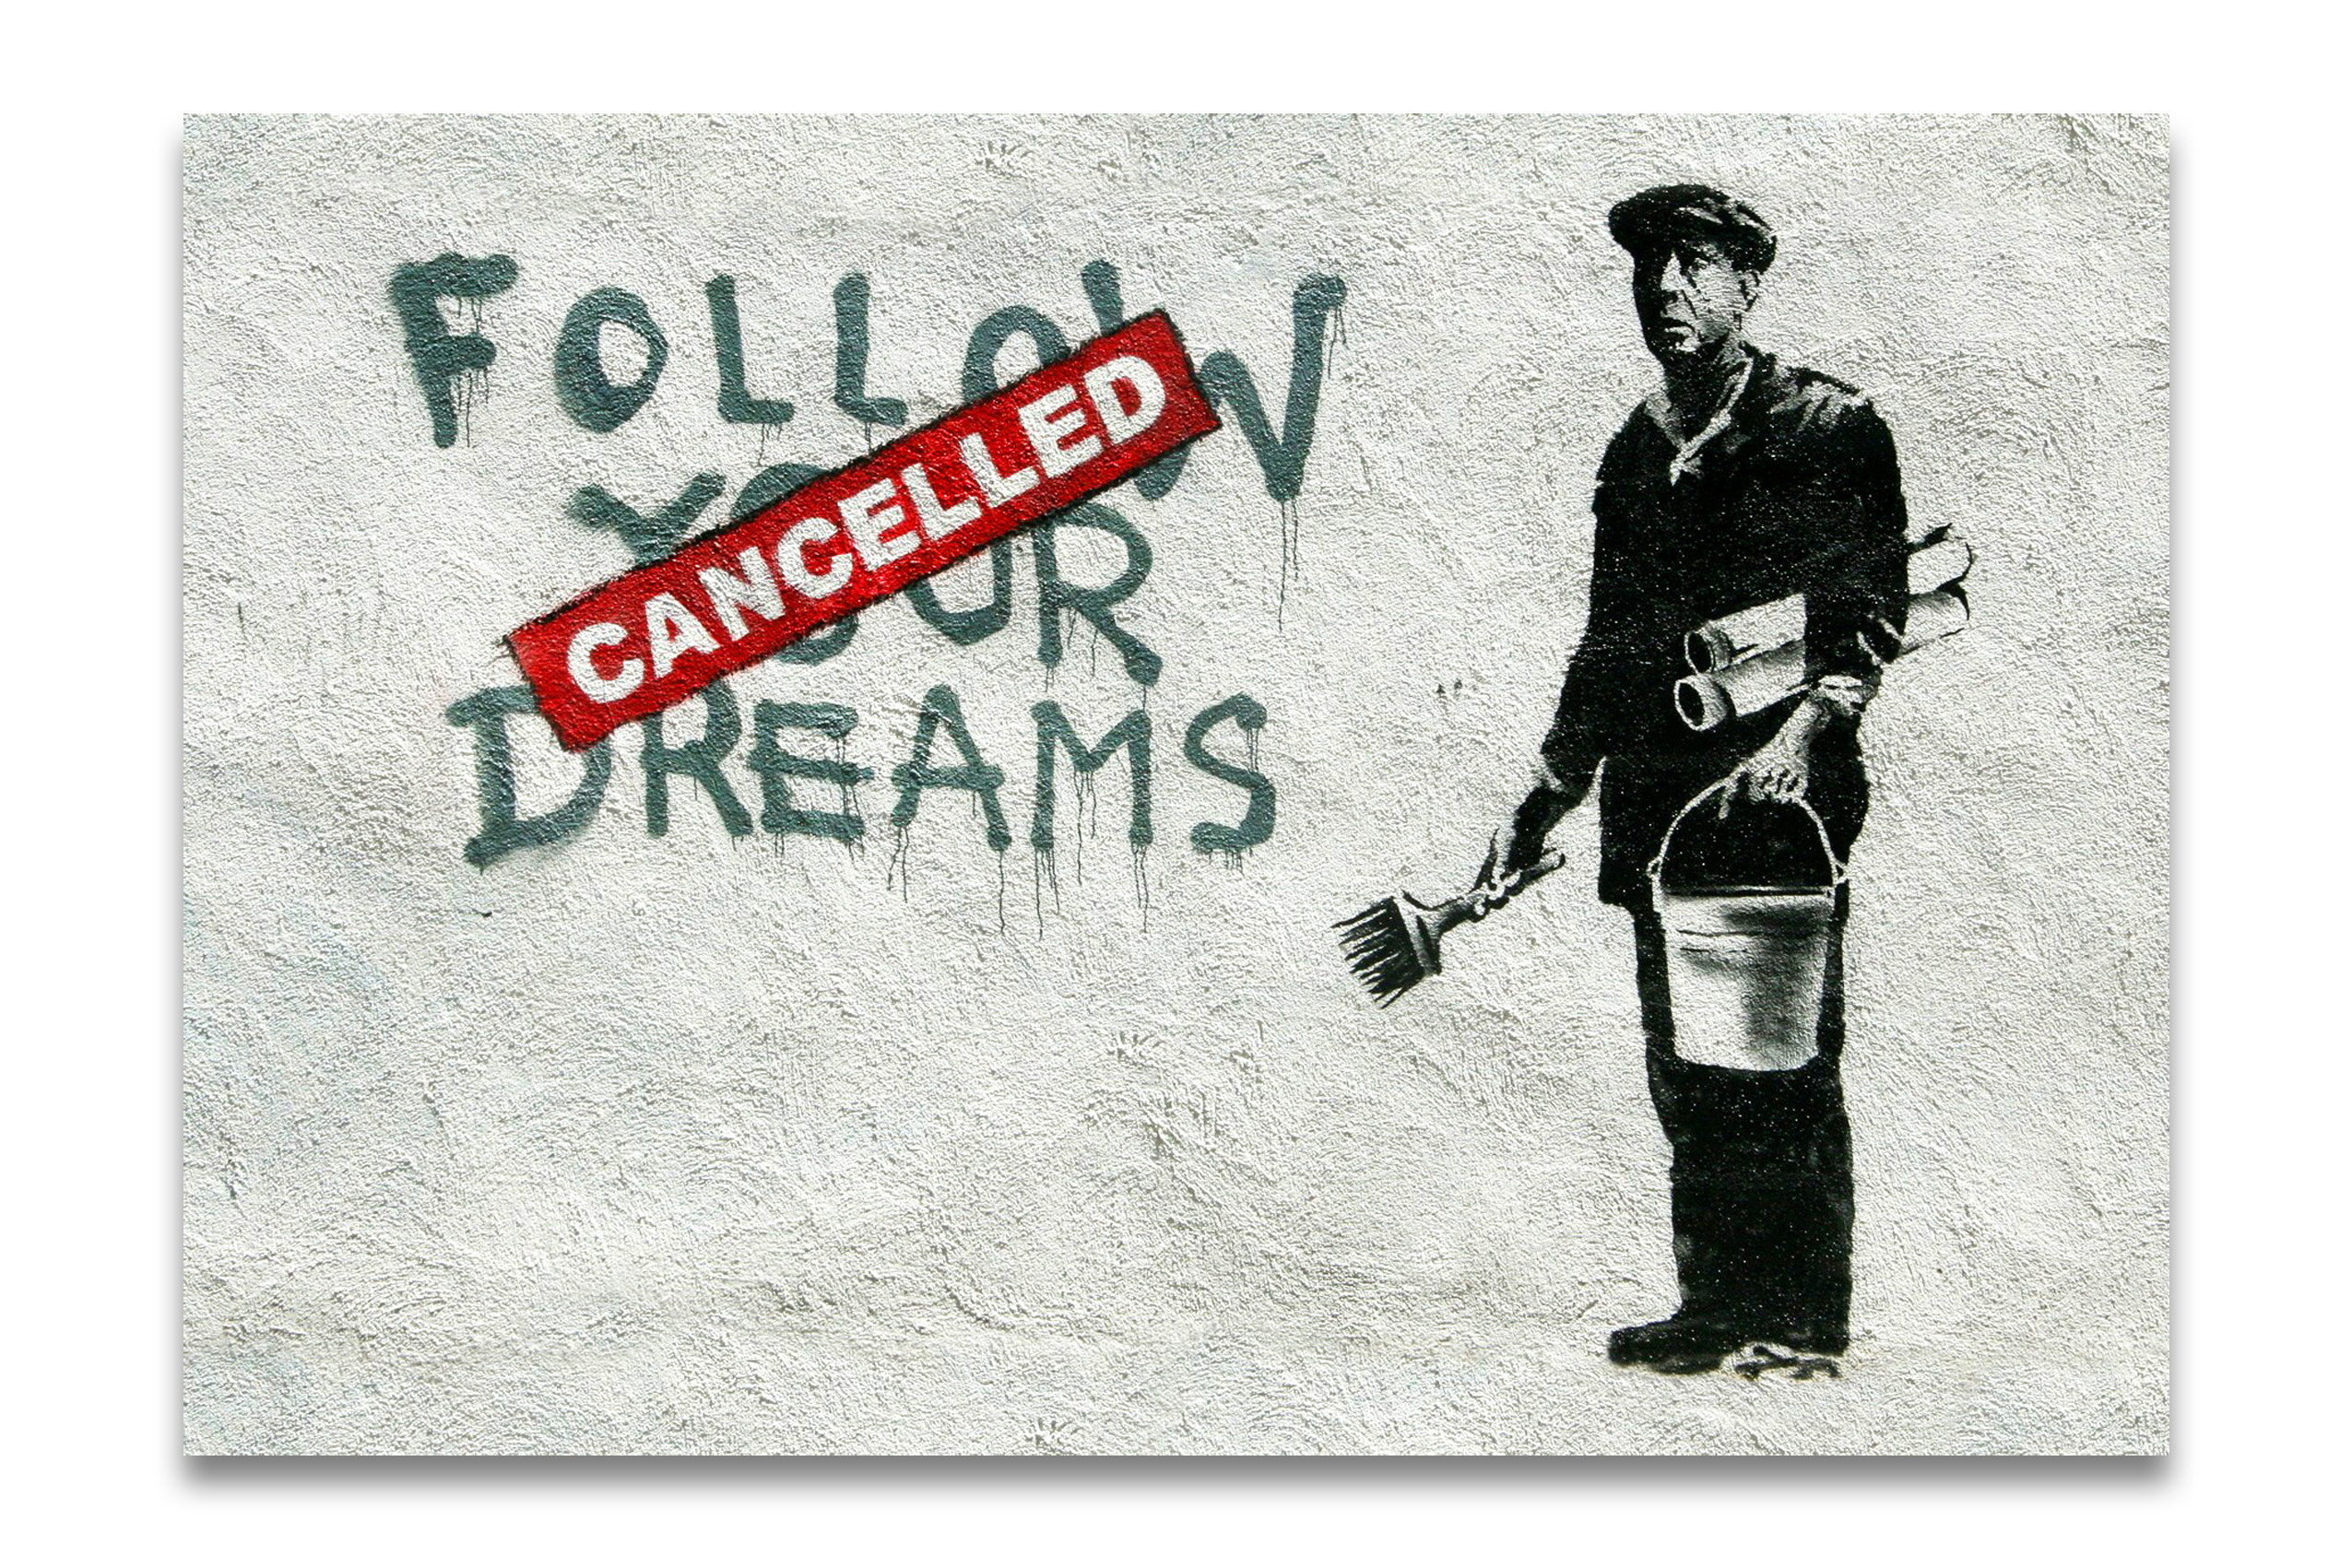 banksy follow your dreams cancelled kunstdruck auf leinwand. Black Bedroom Furniture Sets. Home Design Ideas